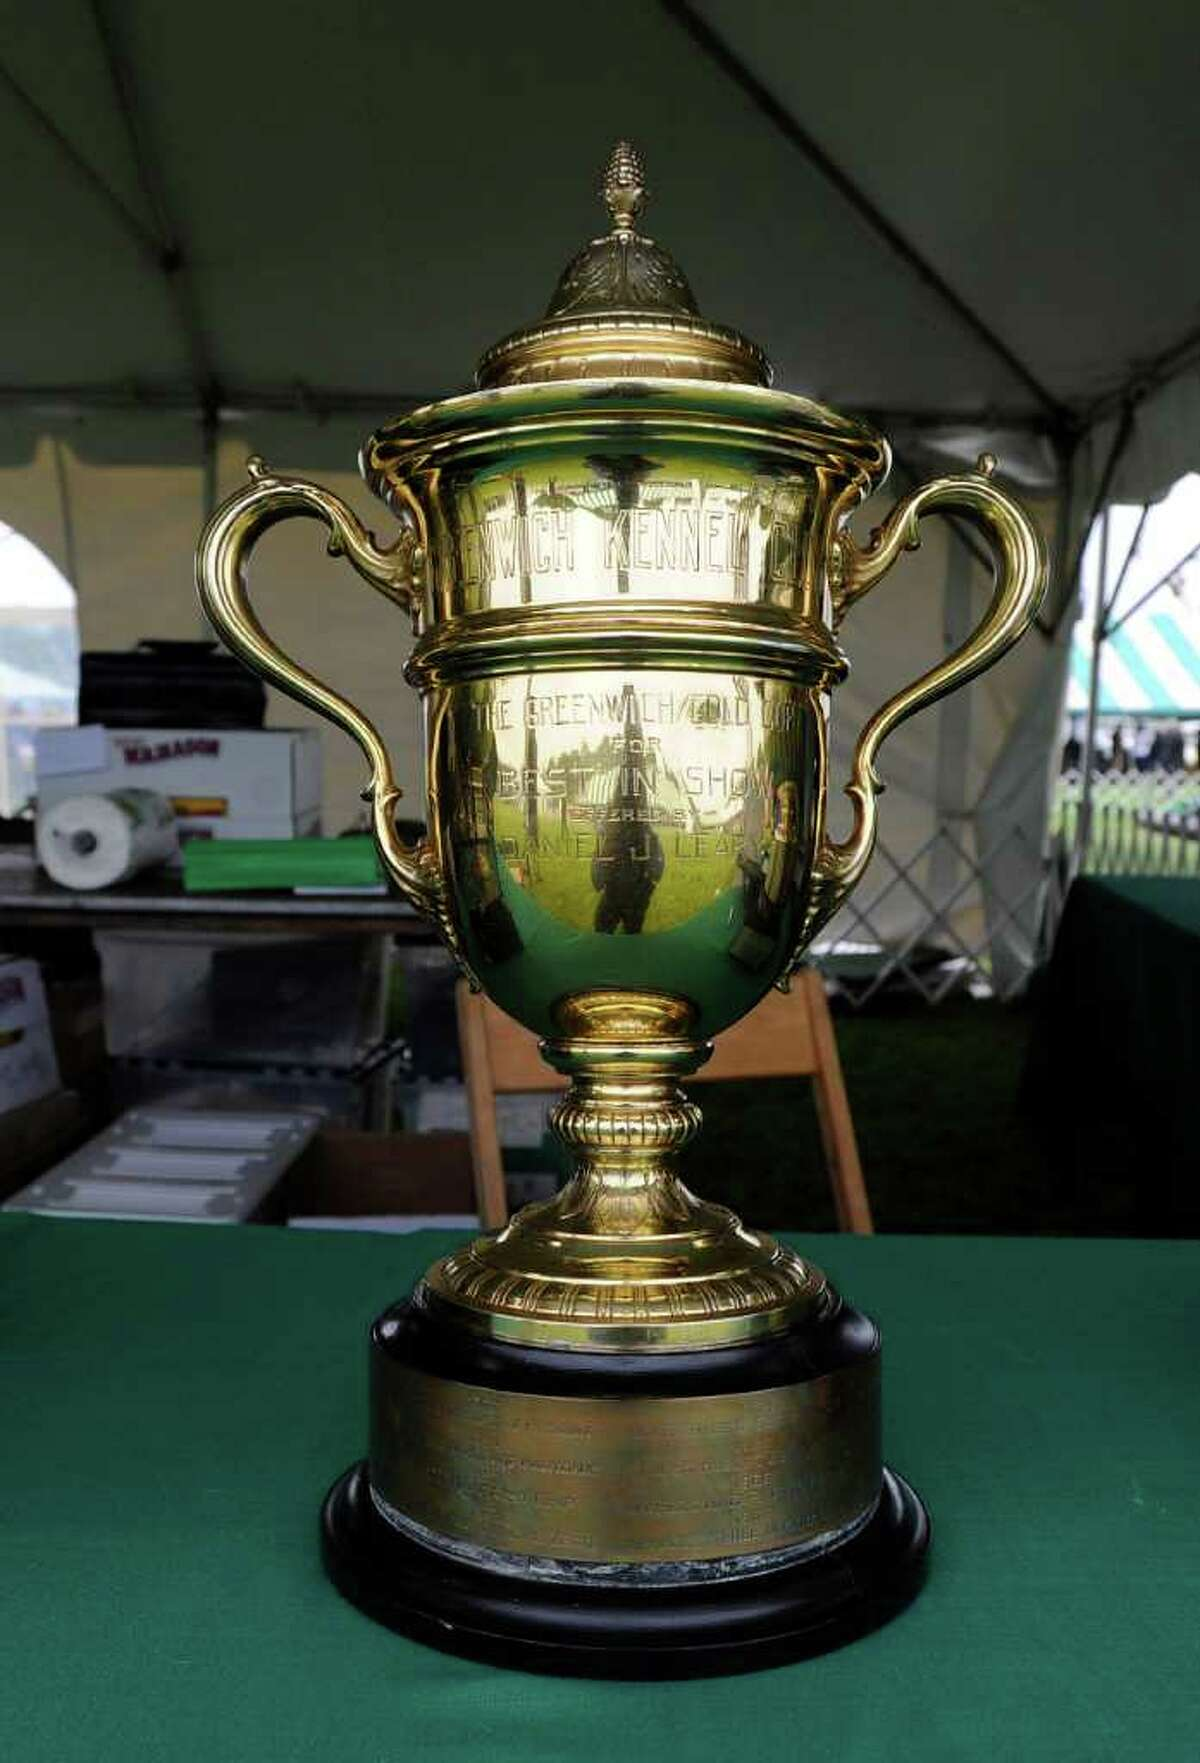 The best in show trophy for the Greenwich Kennel Club All-Breed Dog Show sits on a table at Taylor Farm Park, Norwalk, Saturday afternoon, June 11, 2011.